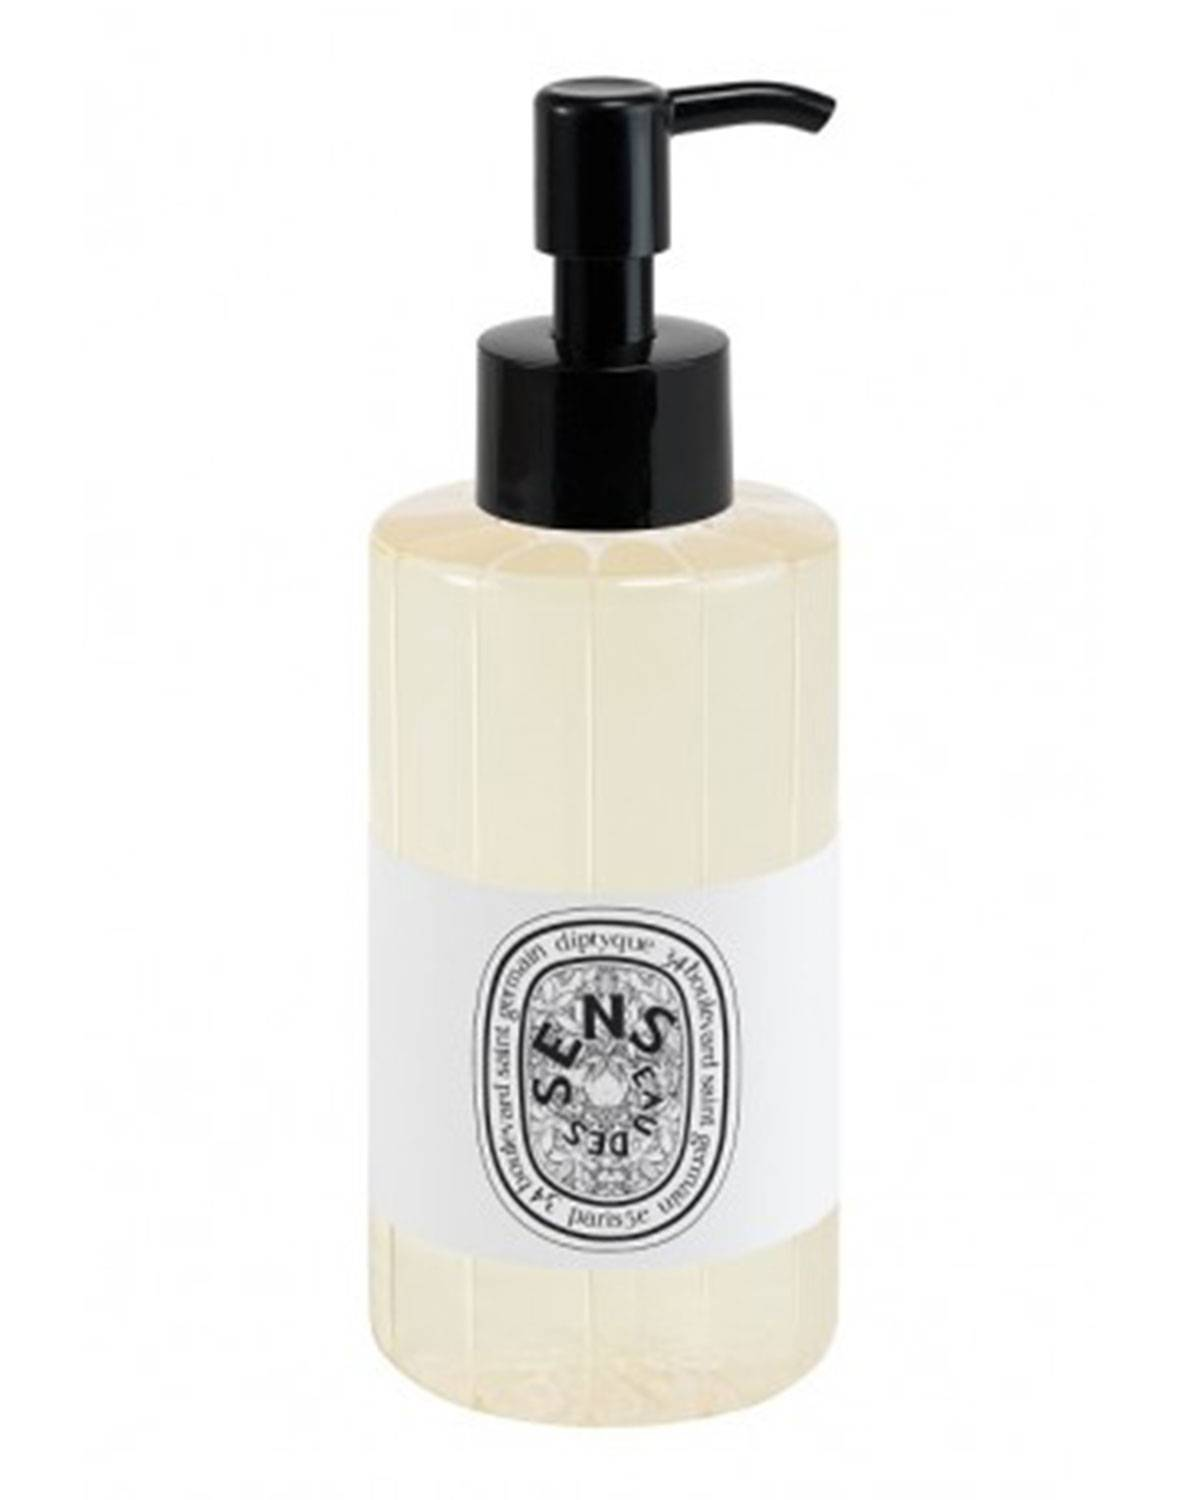 Diptyque 6.8 oz. Eau des Sens Cleansing Hand and Body Gel